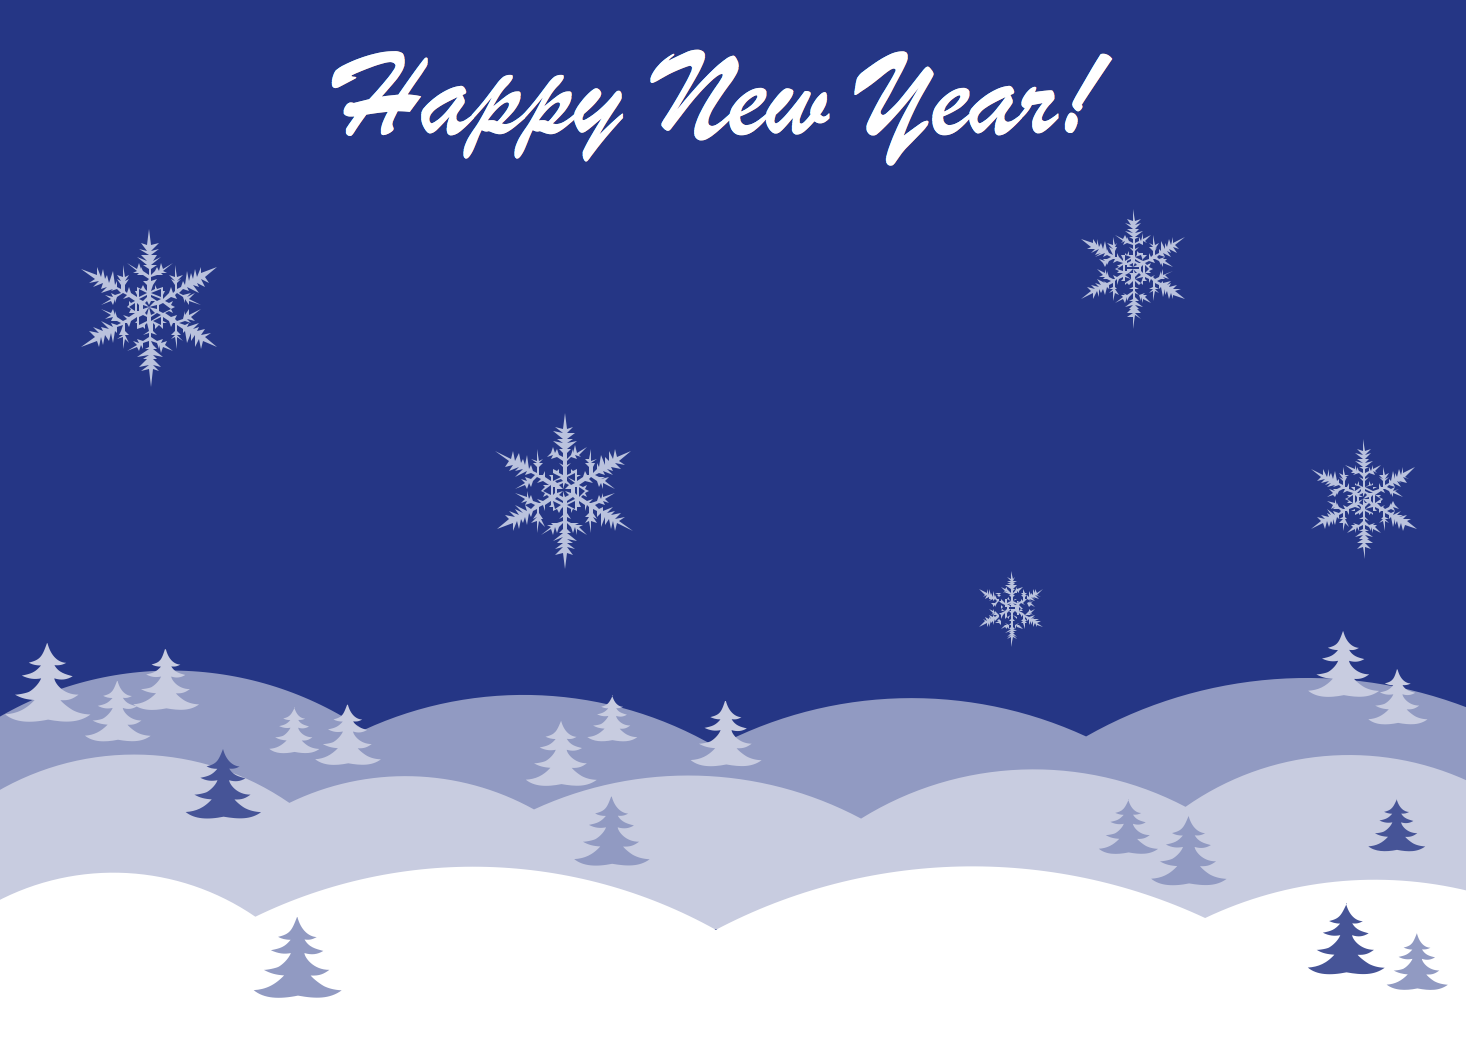 New year card template Winter night